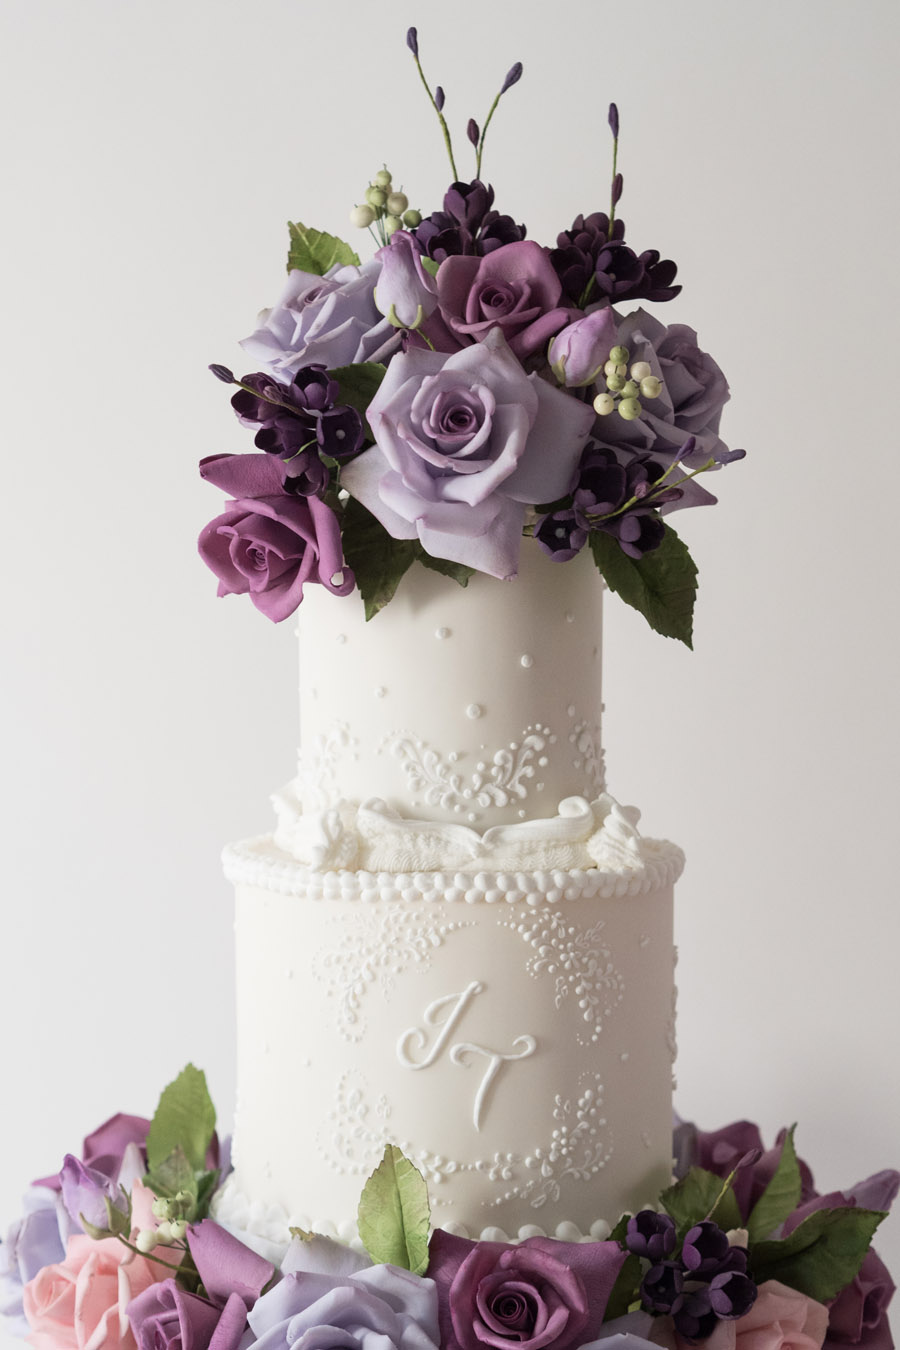 Beautiful wedding cakes by The Frostery - trends and ideas for 2019 (20)